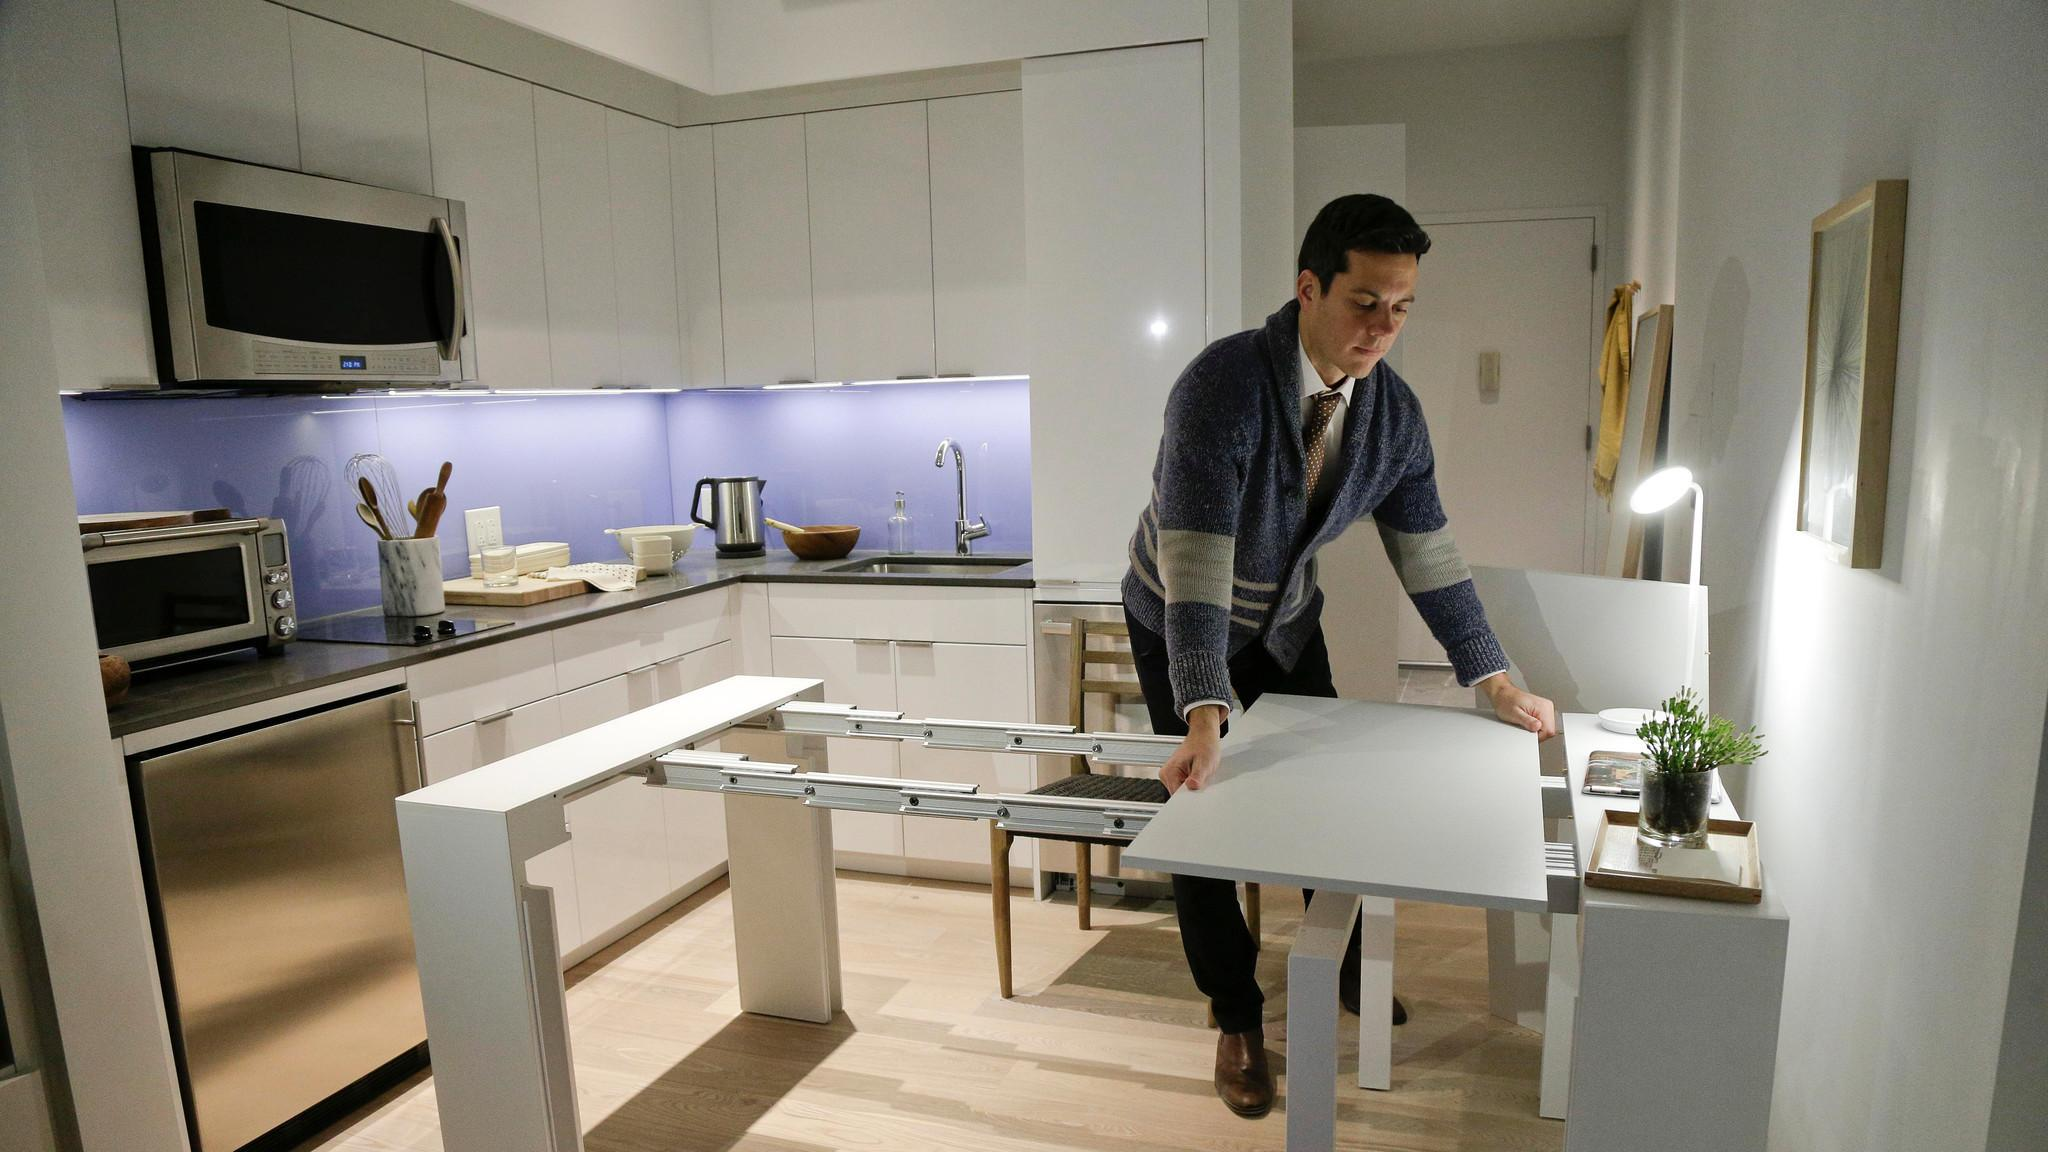 Could Micro Apartments Solve Affordable Housing Crisis